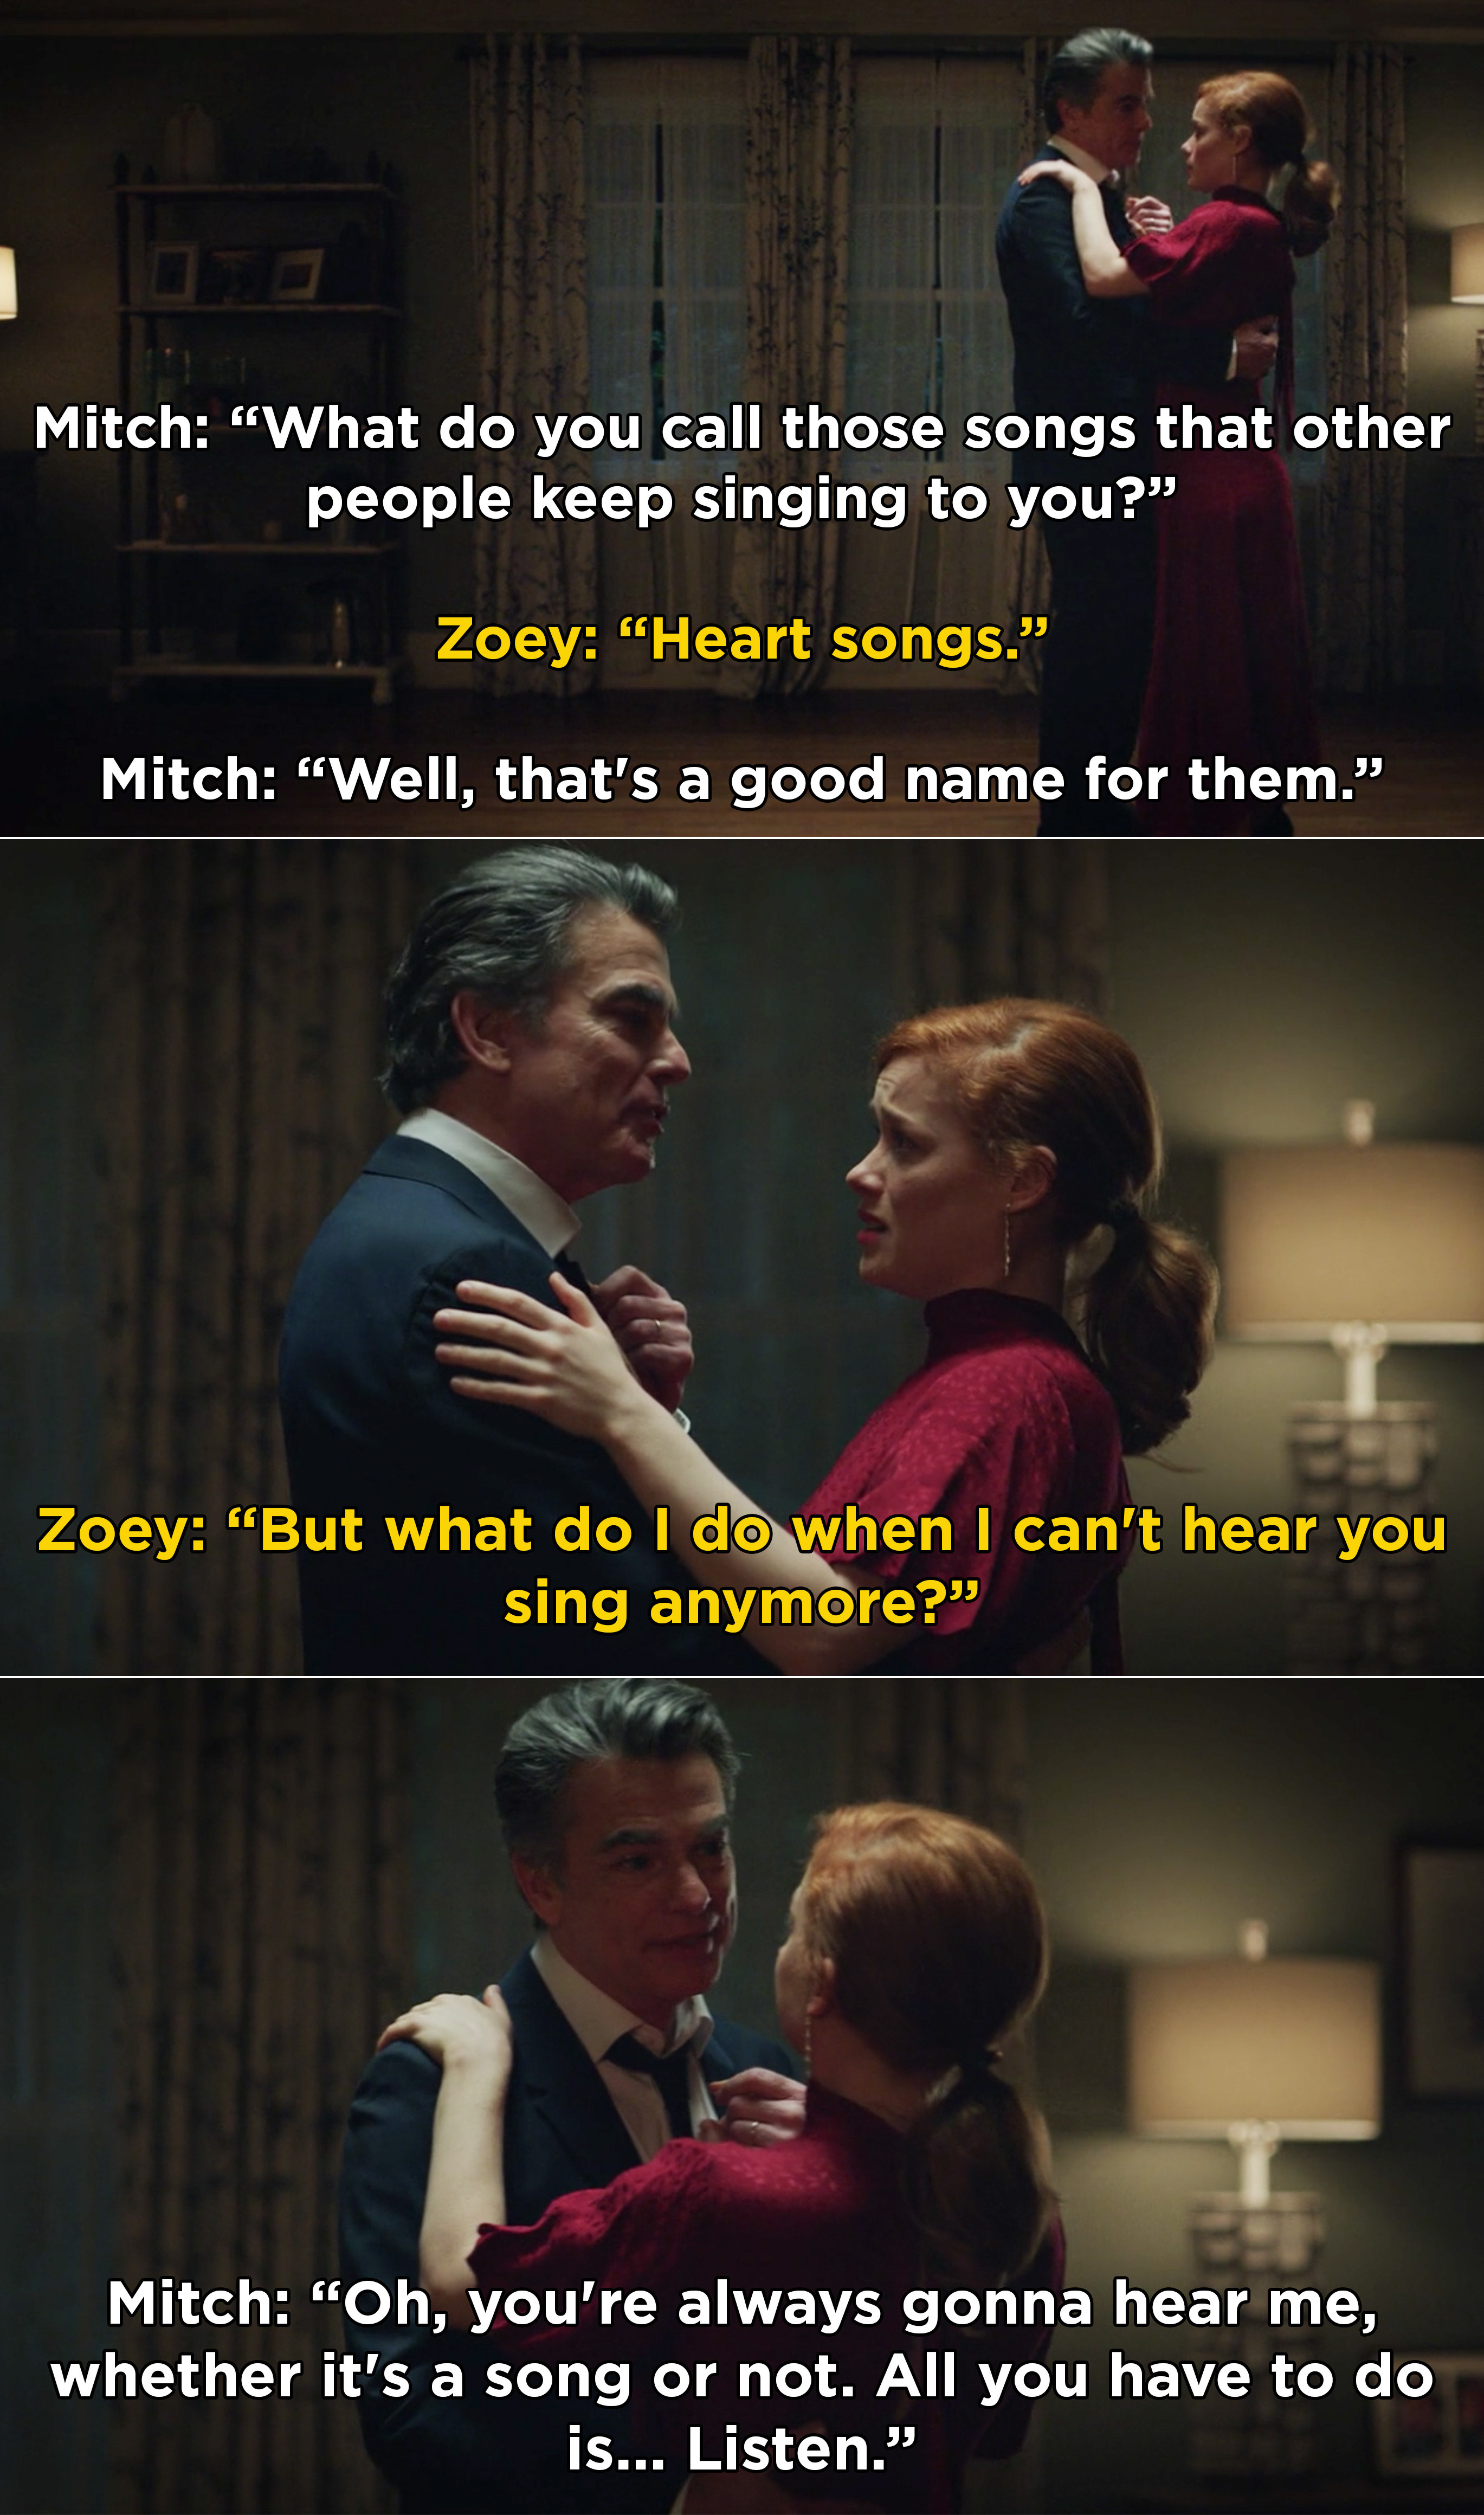 Zoey and Mitch dancing and Mitch saying that Zoey will always hear him, whether it's a song or not